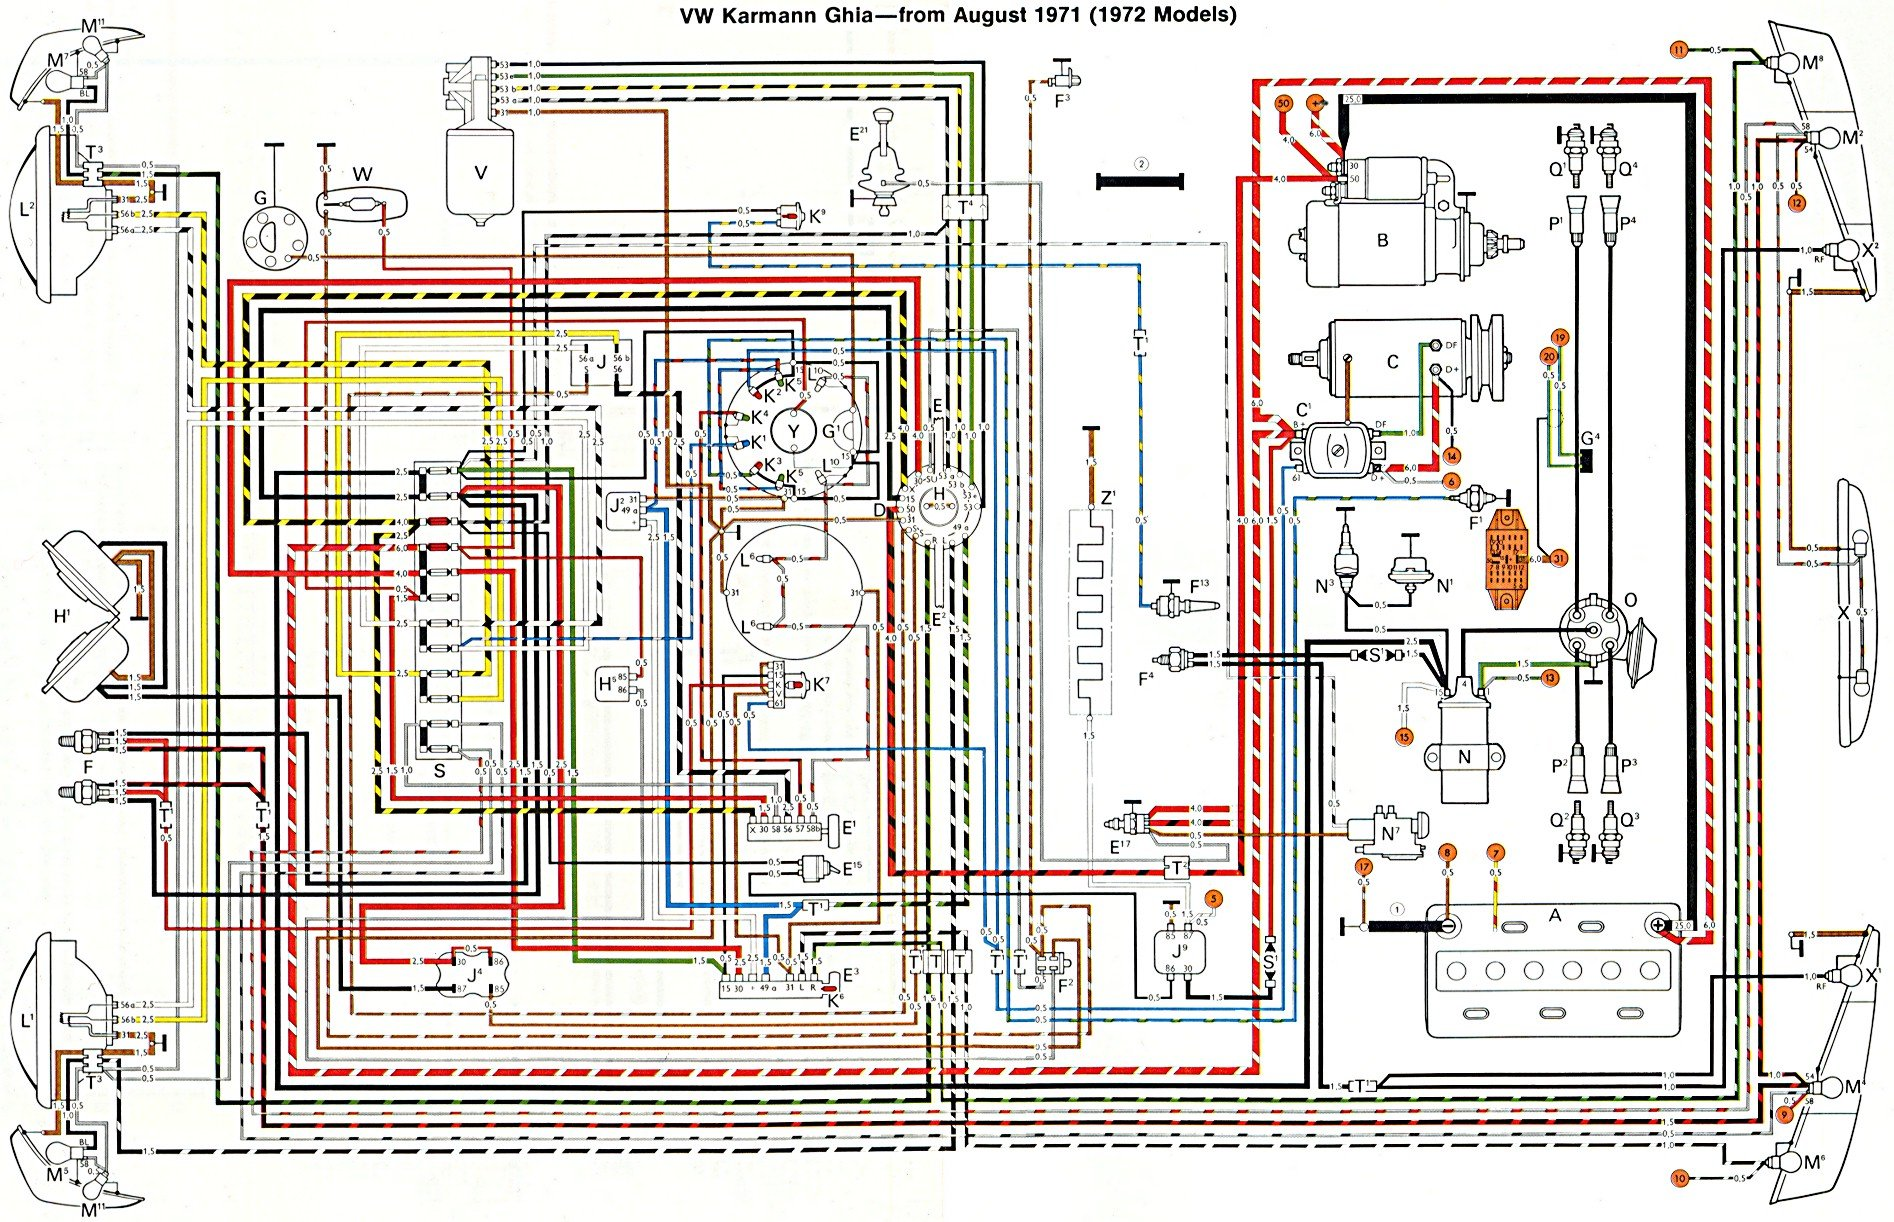 72ghia thesamba com karmann ghia wiring diagrams vw golf 3 electrical wiring diagram at webbmarketing.co